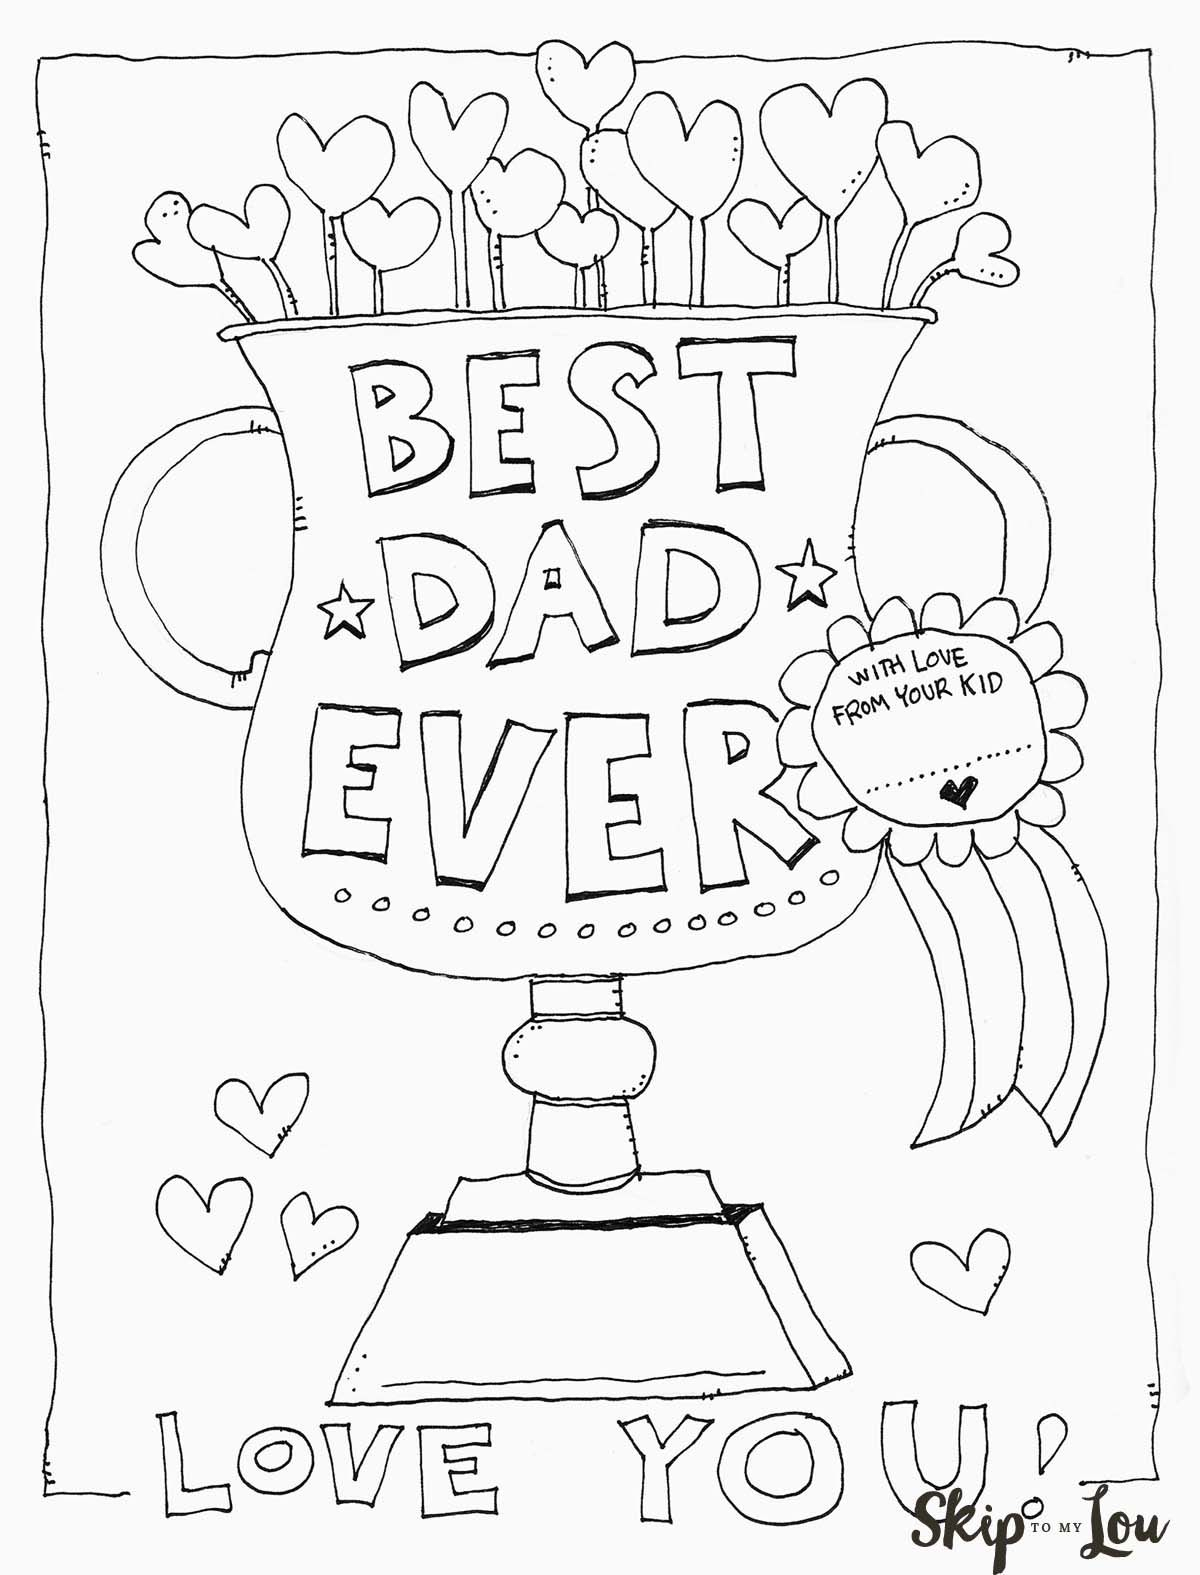 Dad Coloring Page For The Best Dad | Father's Day | Pinterest | Kids - Free Printable Fathers Day Coloring Pages For Grandpa